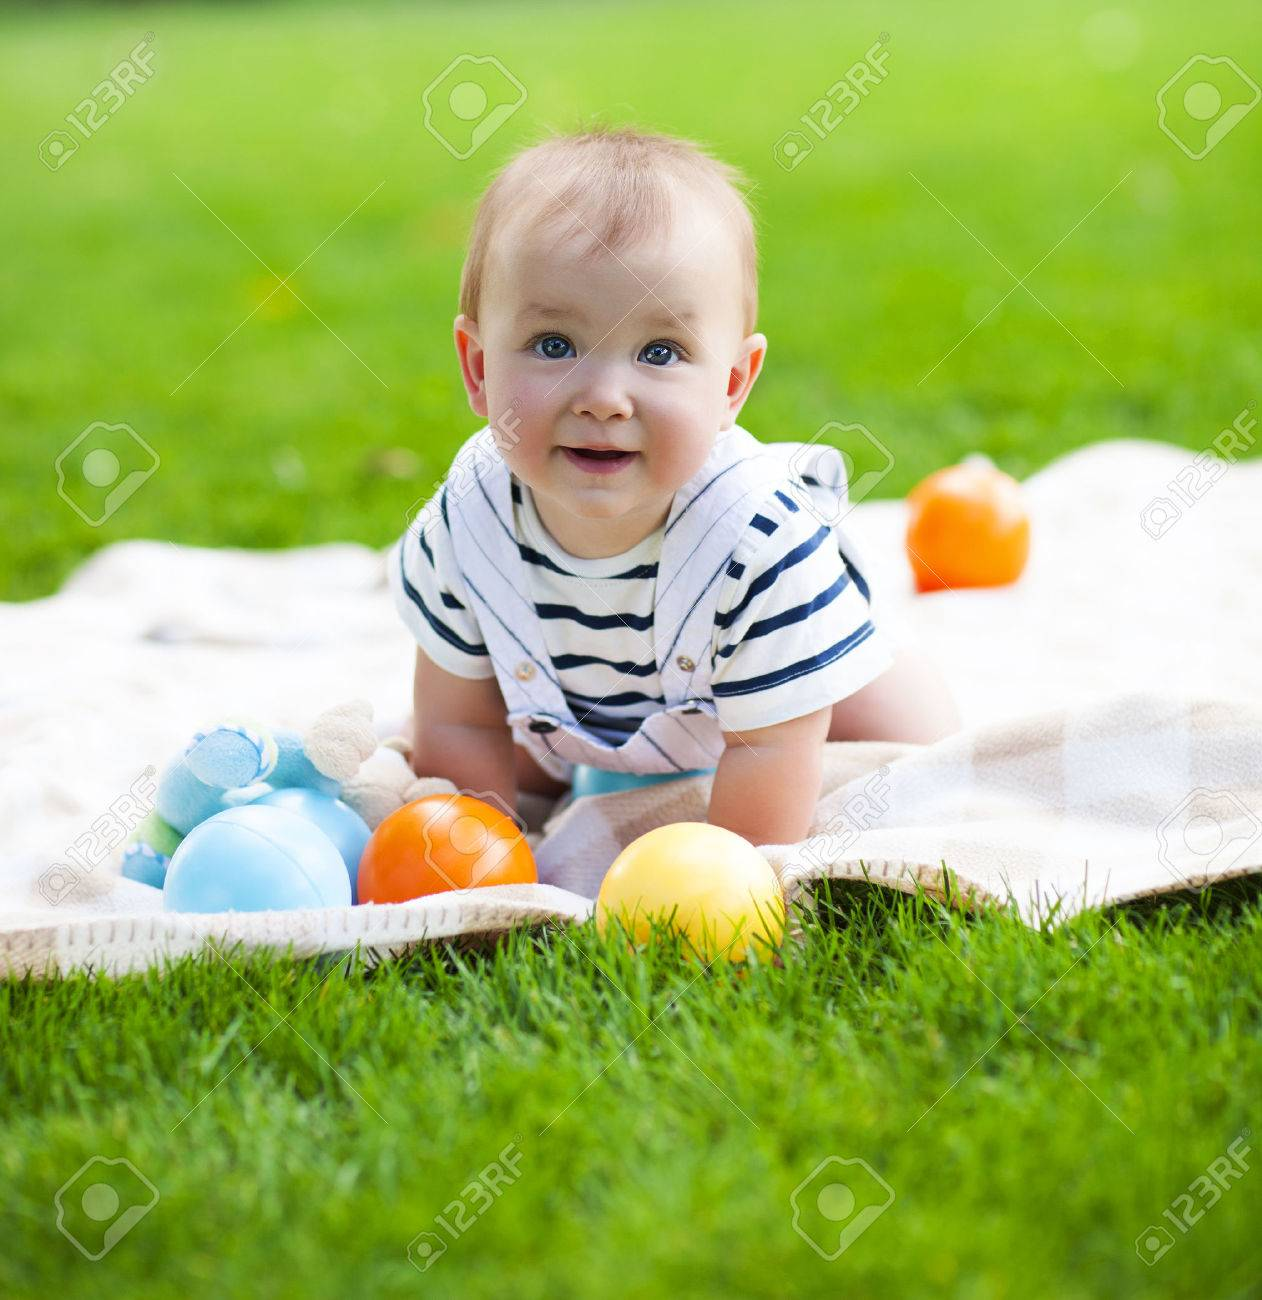 Close up portrait of the smiling baby boy playing outdoors - 54379904